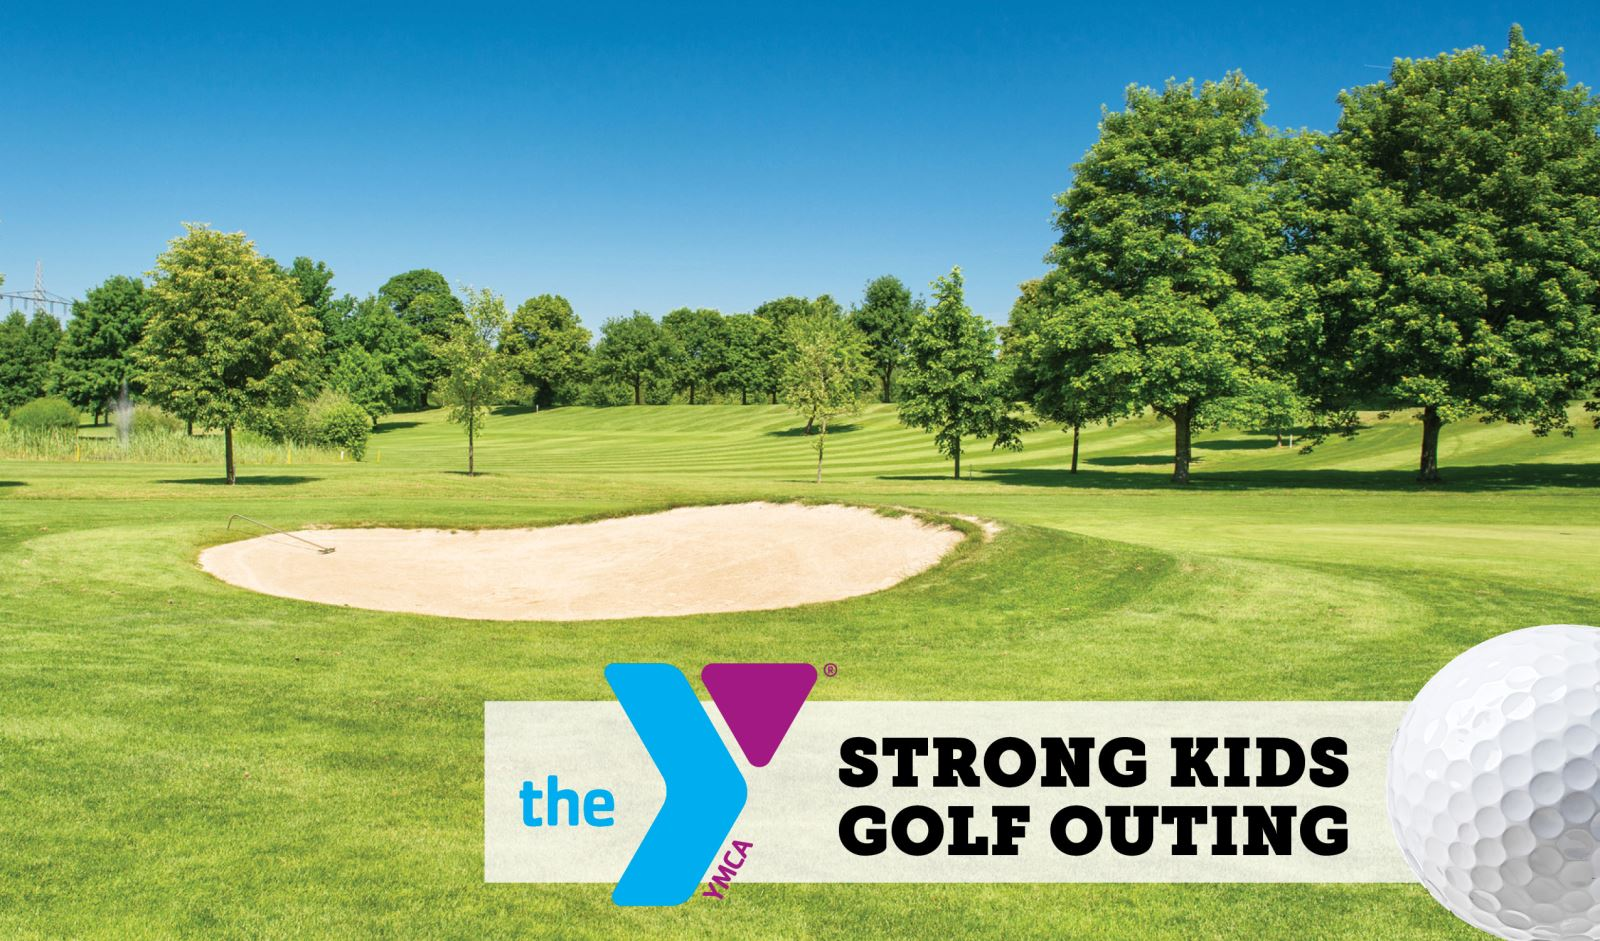 YMCA of the Okobojis Strong Kids Golf Outing